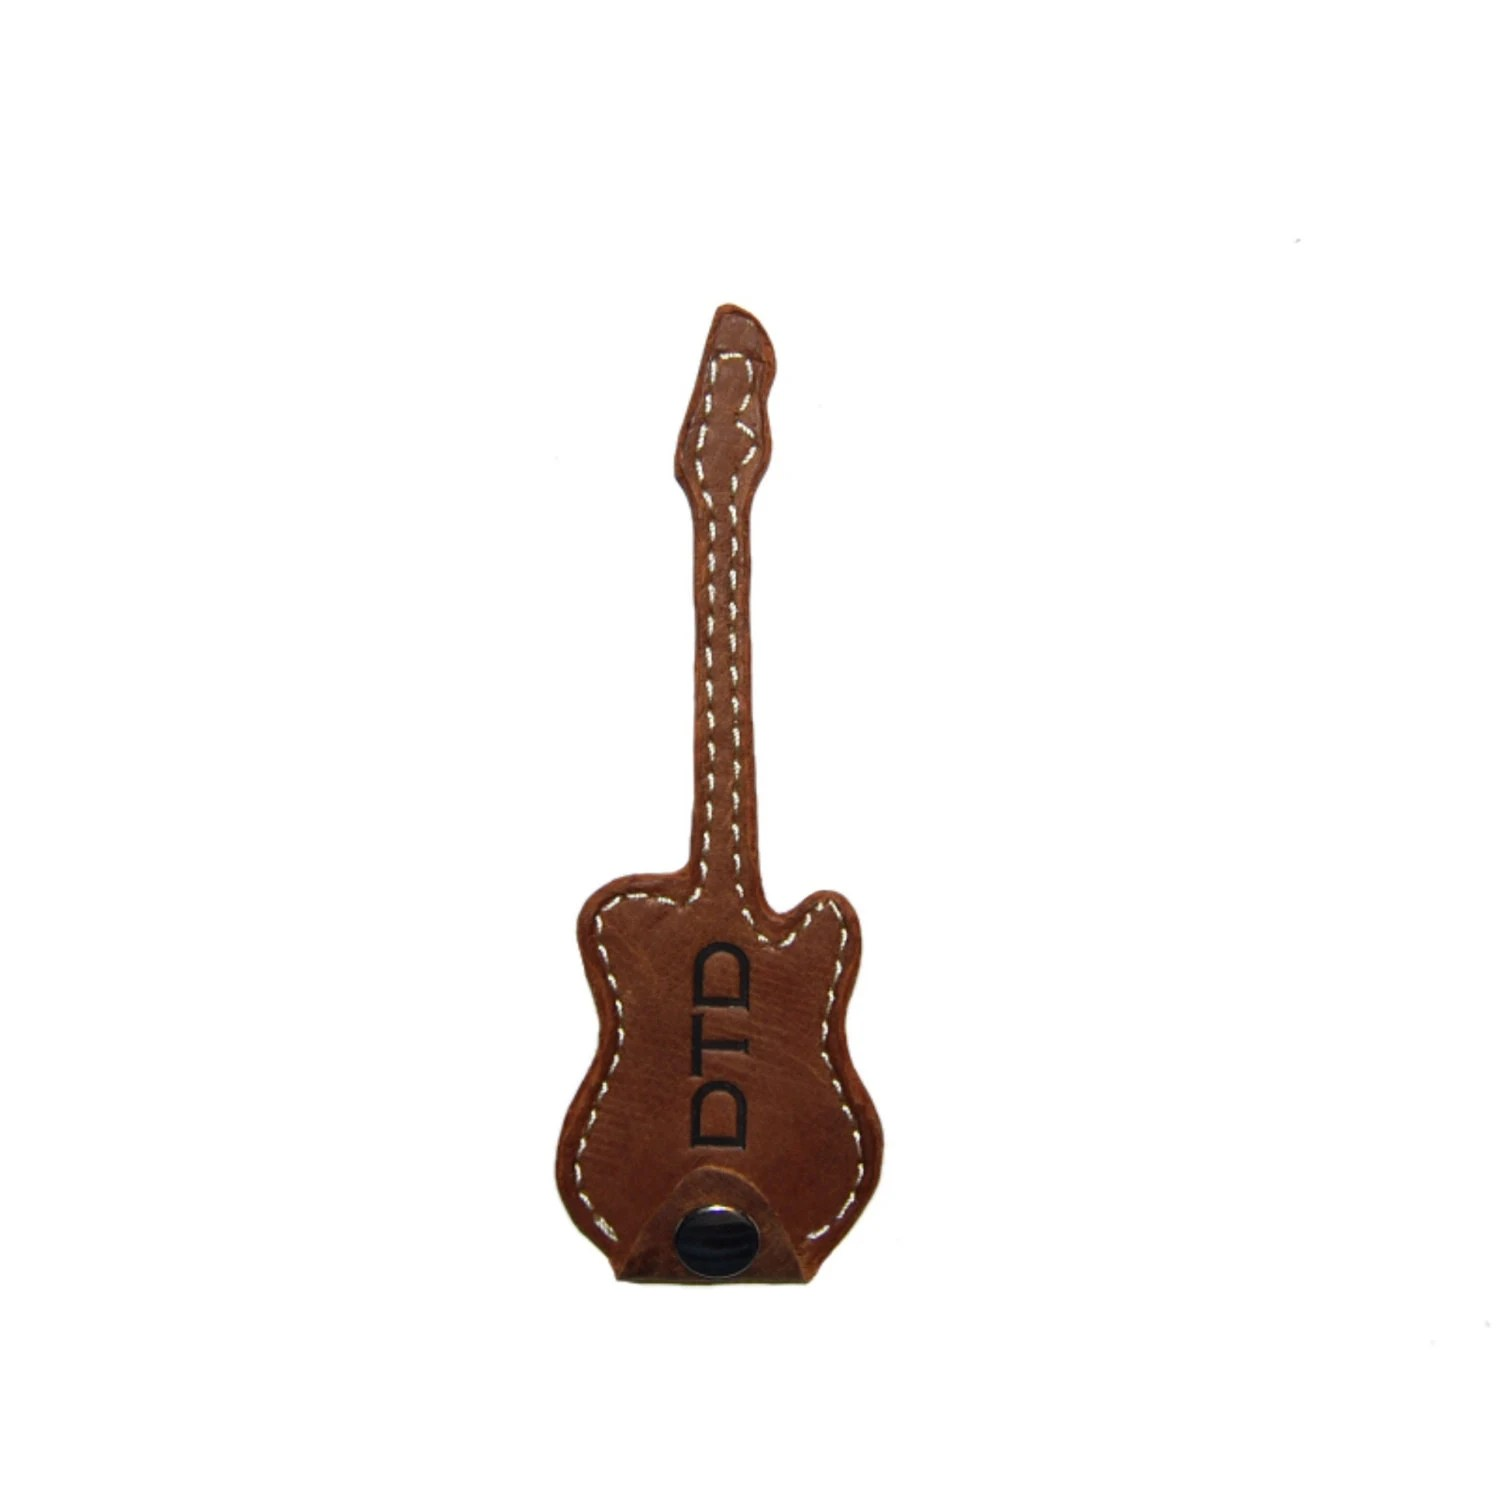 Guitar Pick Holder Guitar Pick Case Brown Personalized